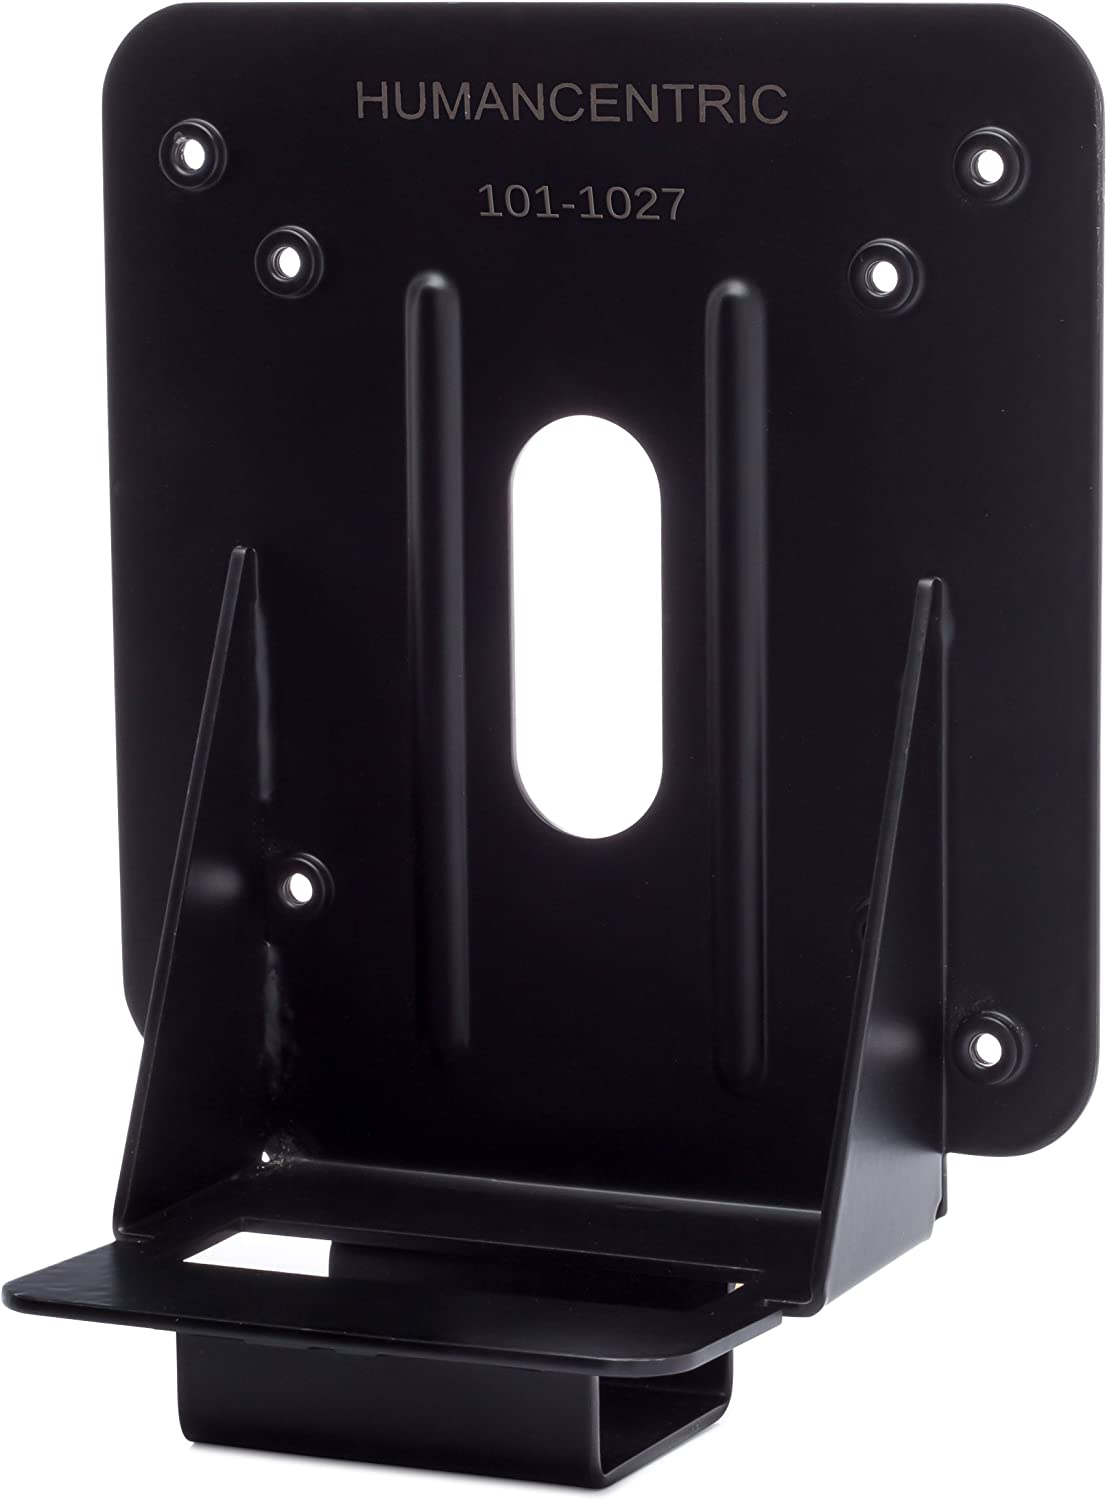 HumanCentric VESA Mount Adapter Bracket for Samsung Monitors S24E390HL and S27E390H One Pack